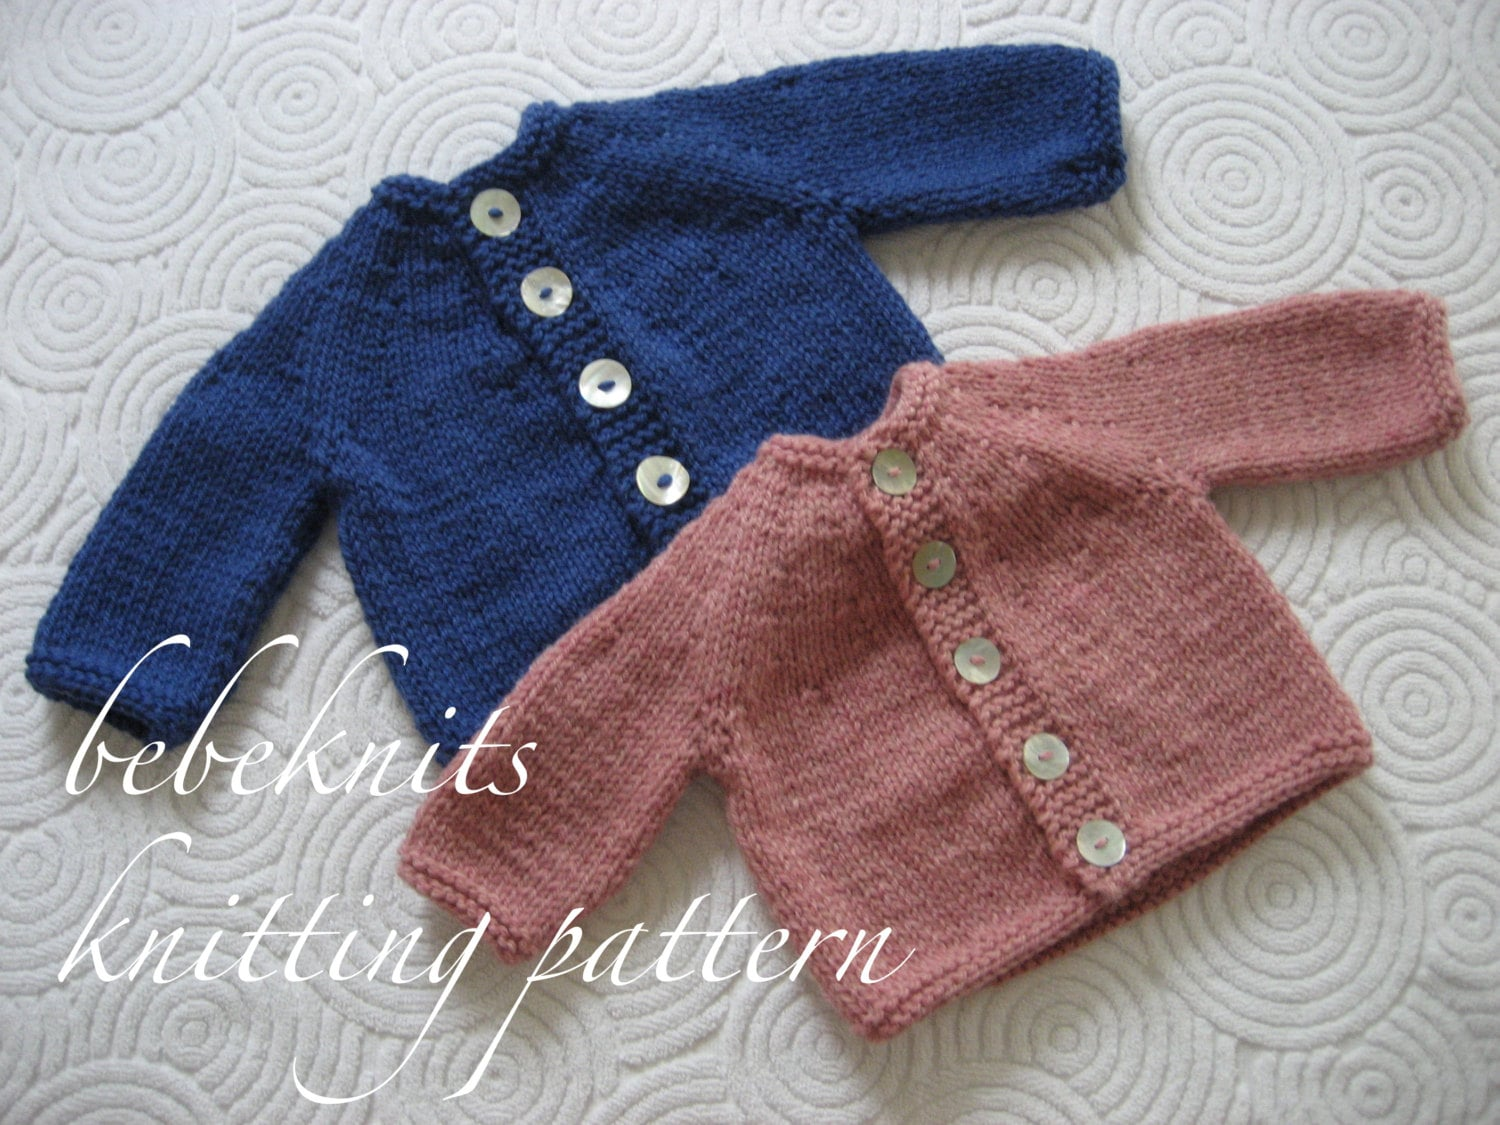 Bebeknits Simple Round Yoke Baby Cardigan Knitting Pattern